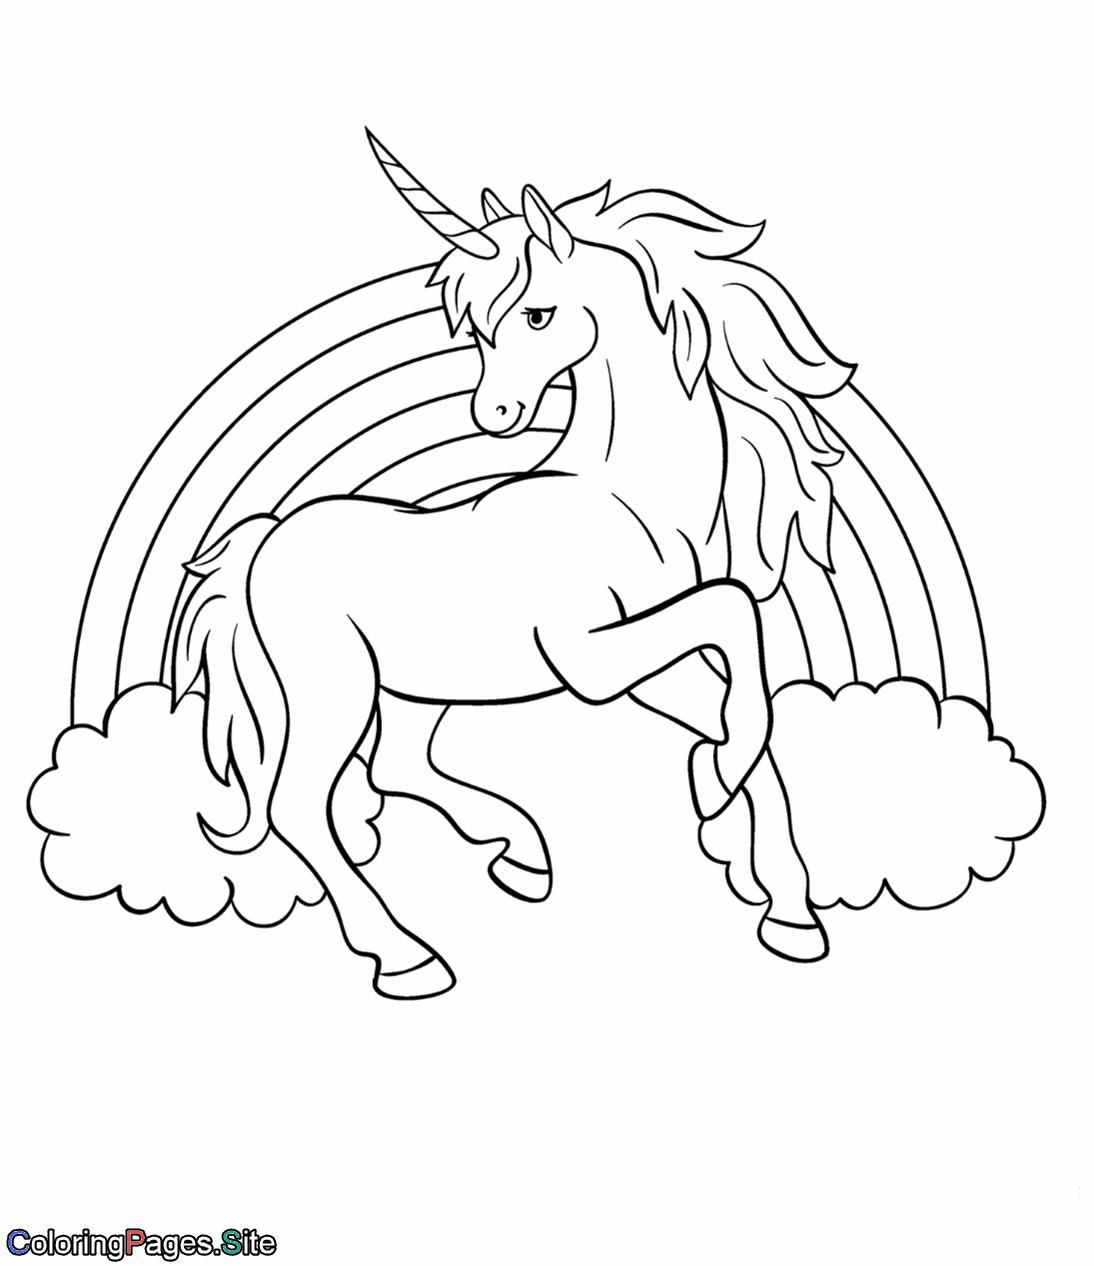 38 Coloring Page Unicorn Rainbow Unicorn Coloring Pages Unicorn Pictures To Color Unicorn Pictures